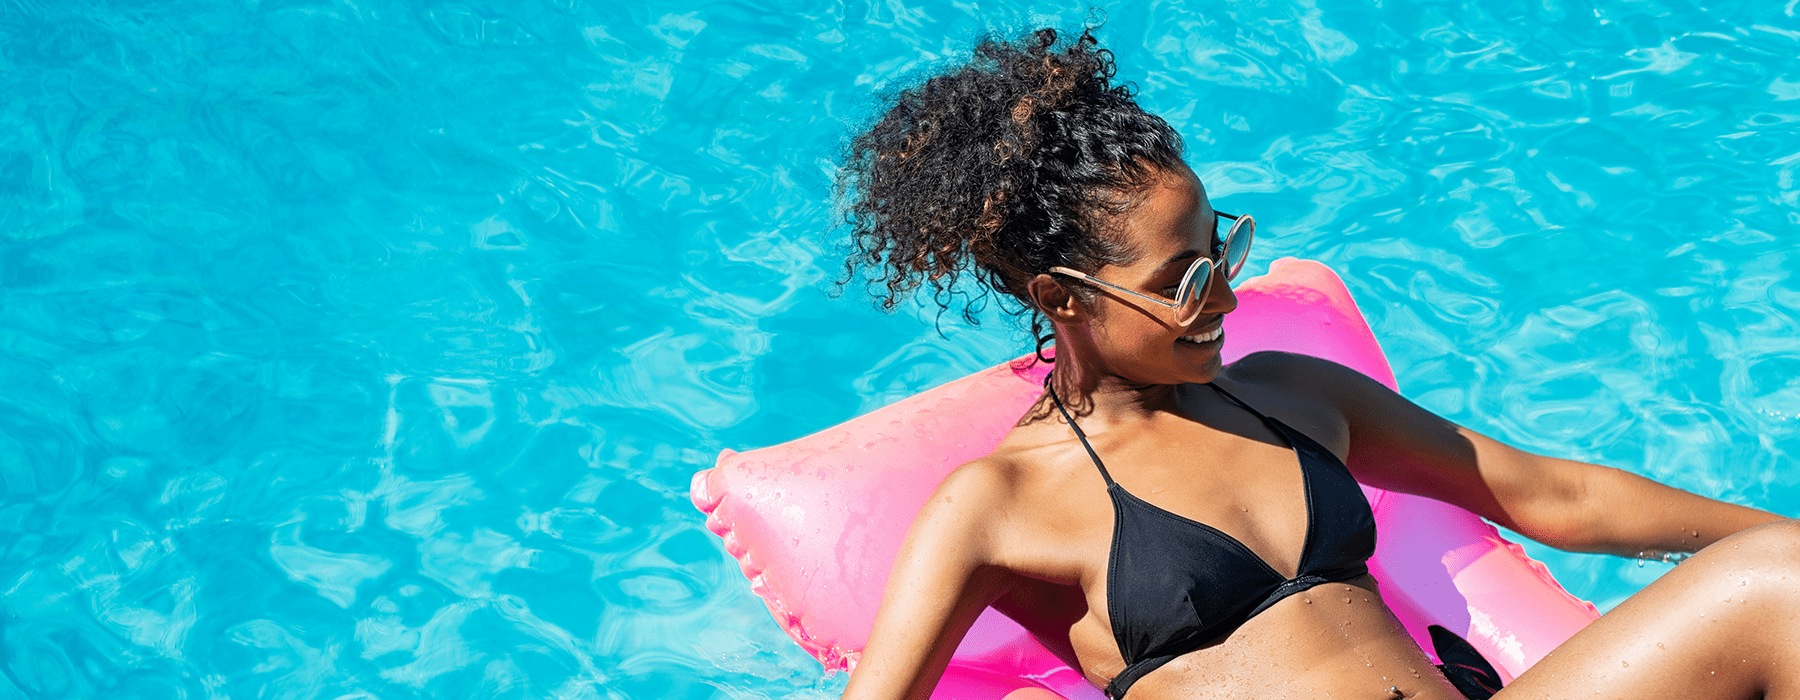 lifestyle image of a woman laying out on an inflatable chair in a swimming pool